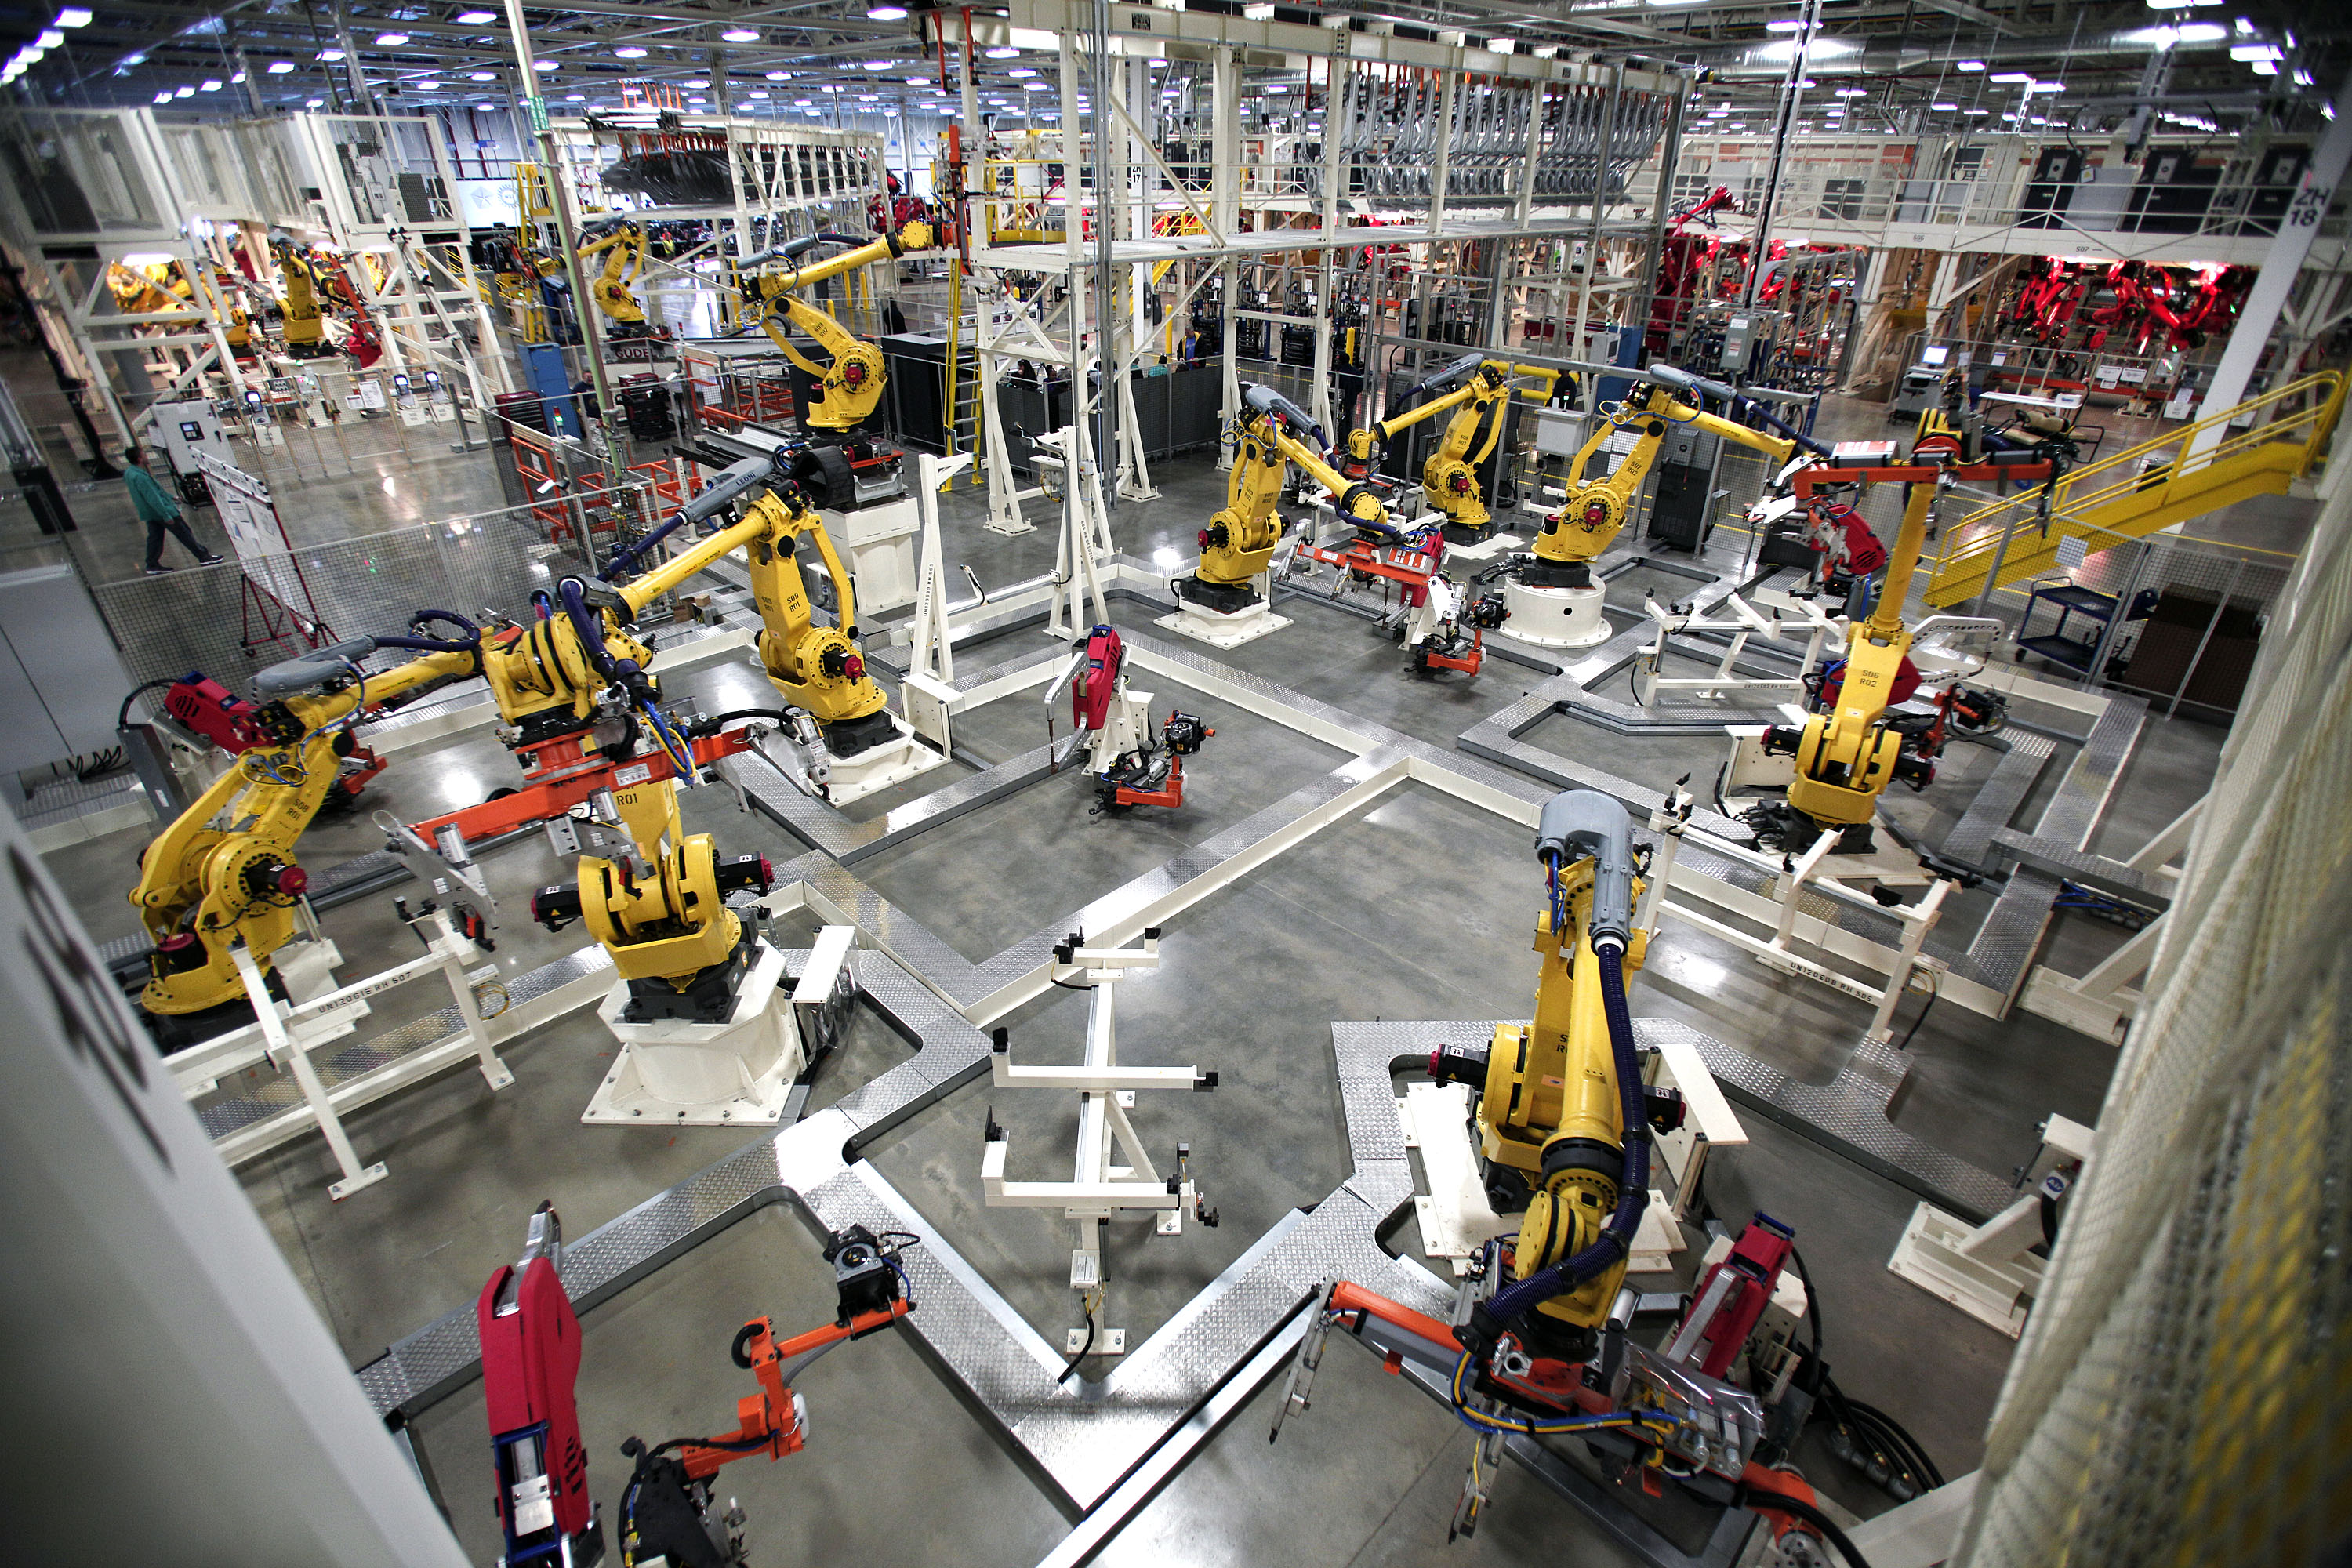 Six jobs are eliminated for every robot introduced into the